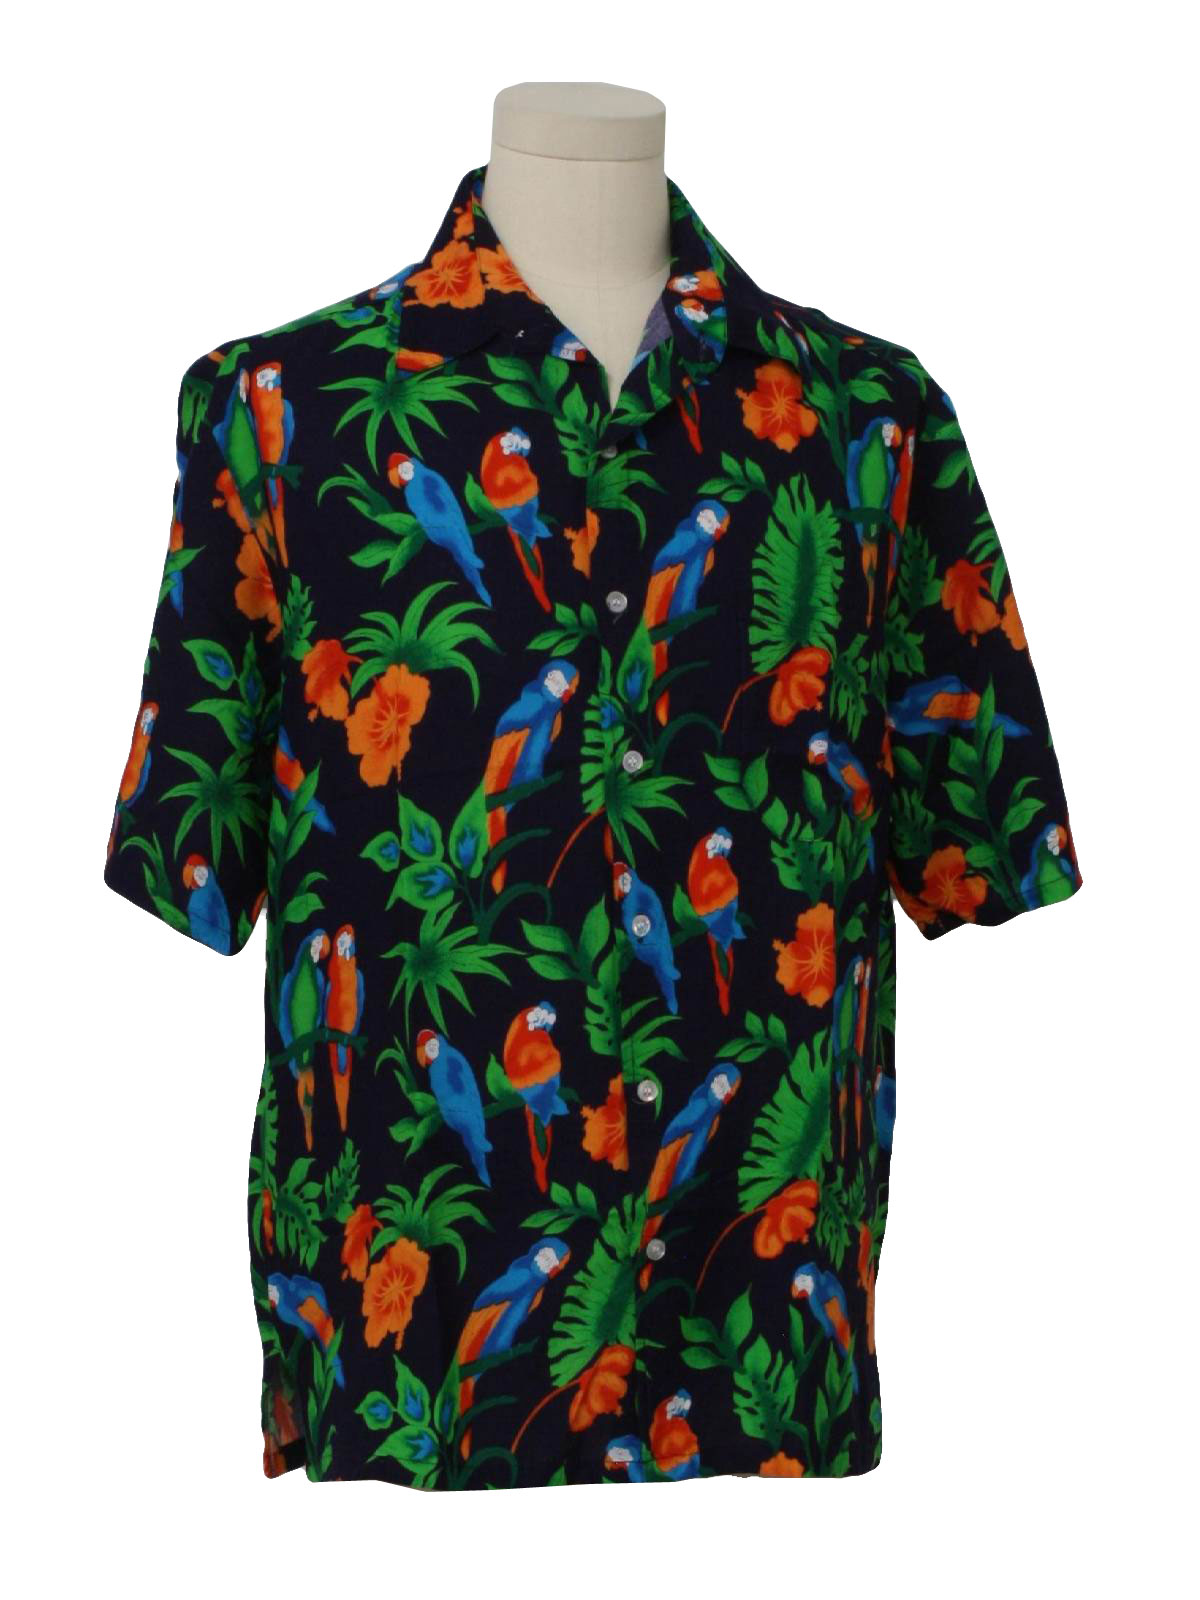 Uncle Joey's Hawaiian Shirts